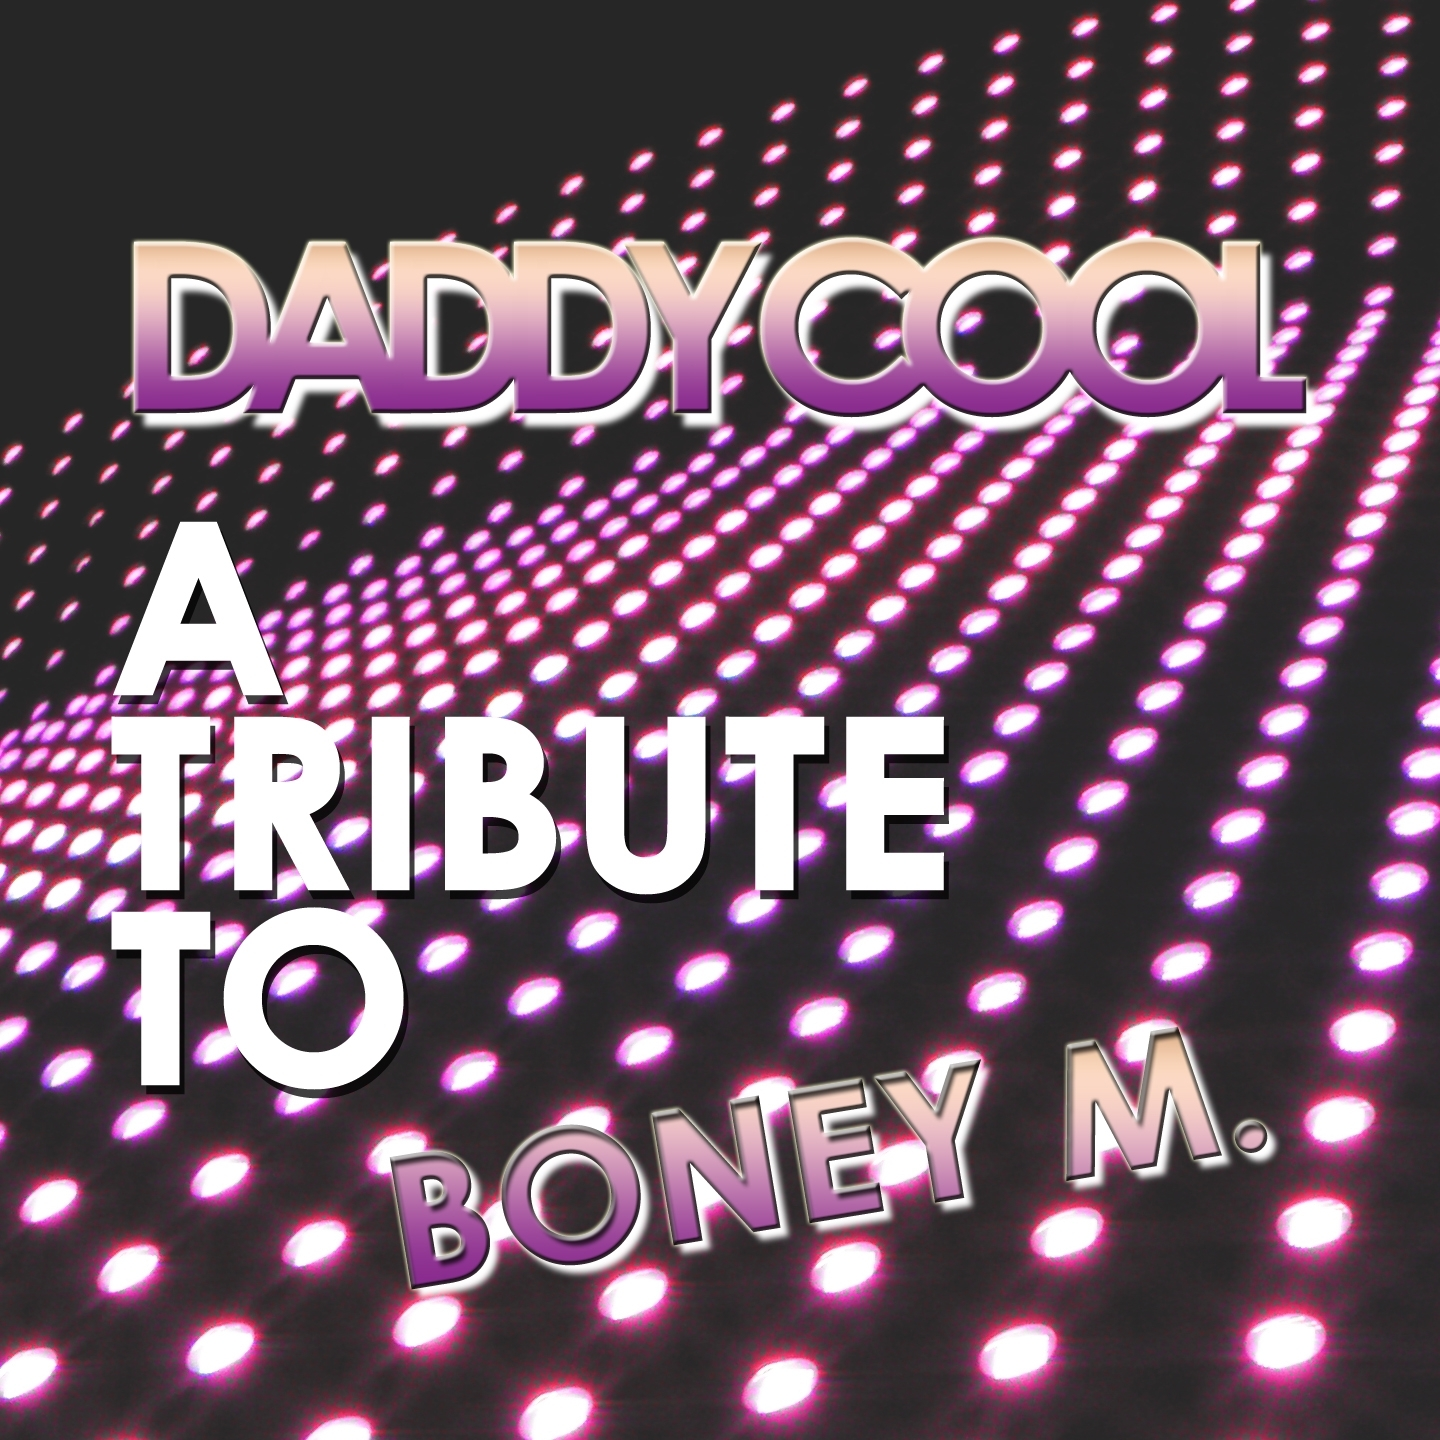 A Tribute to Boney M.: Daddy Cool